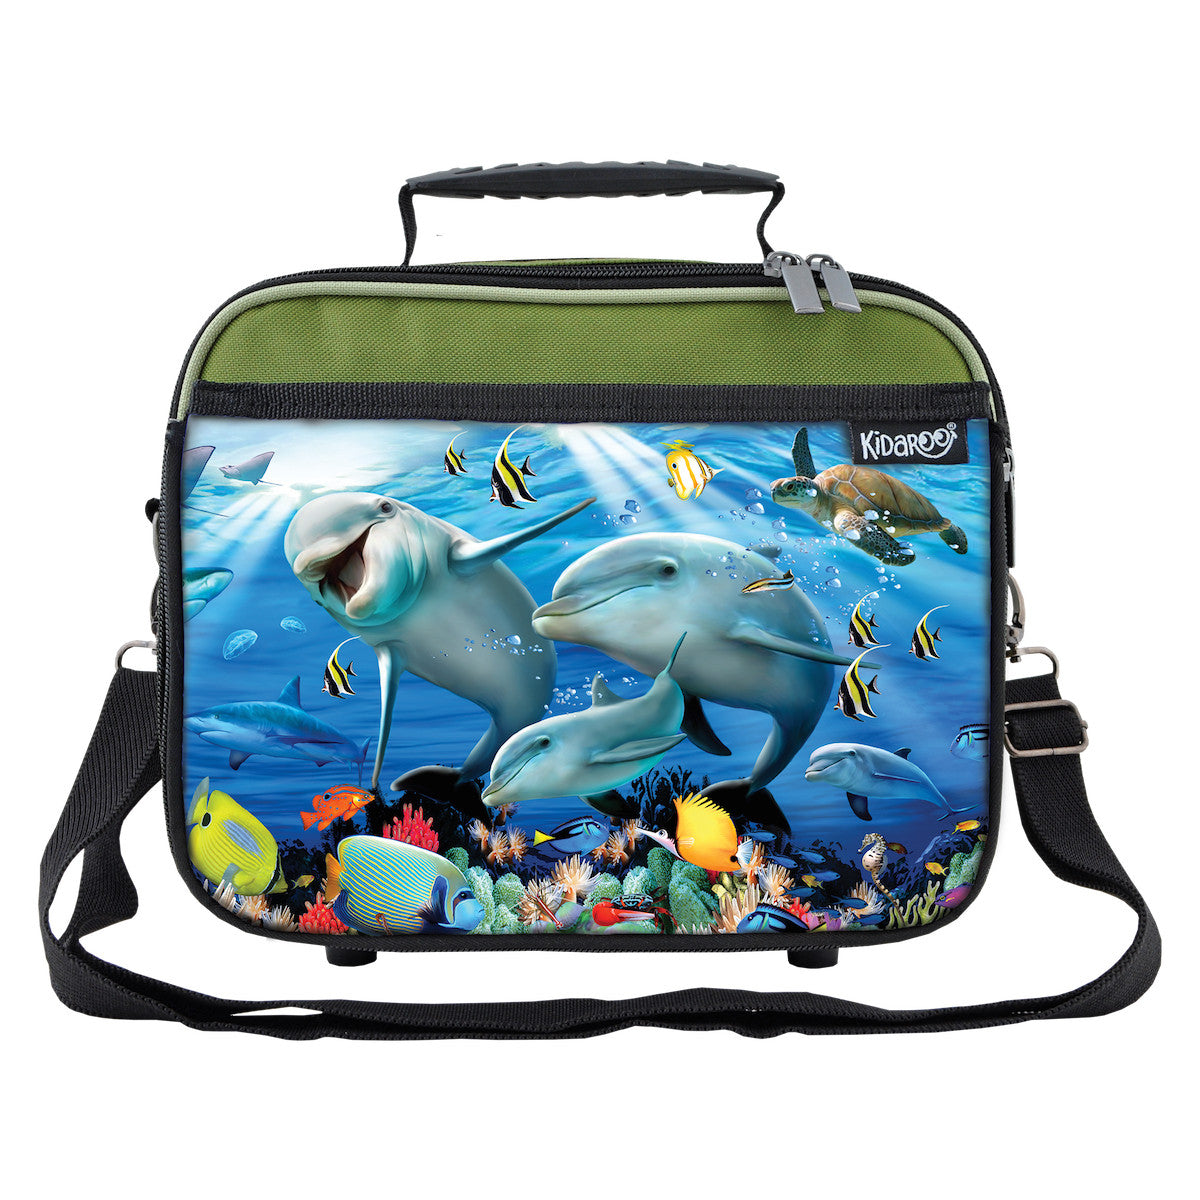 Dolphin Sunshine on the Reef School Lunchbox, Tote Bag for Boys, Girls, Kids